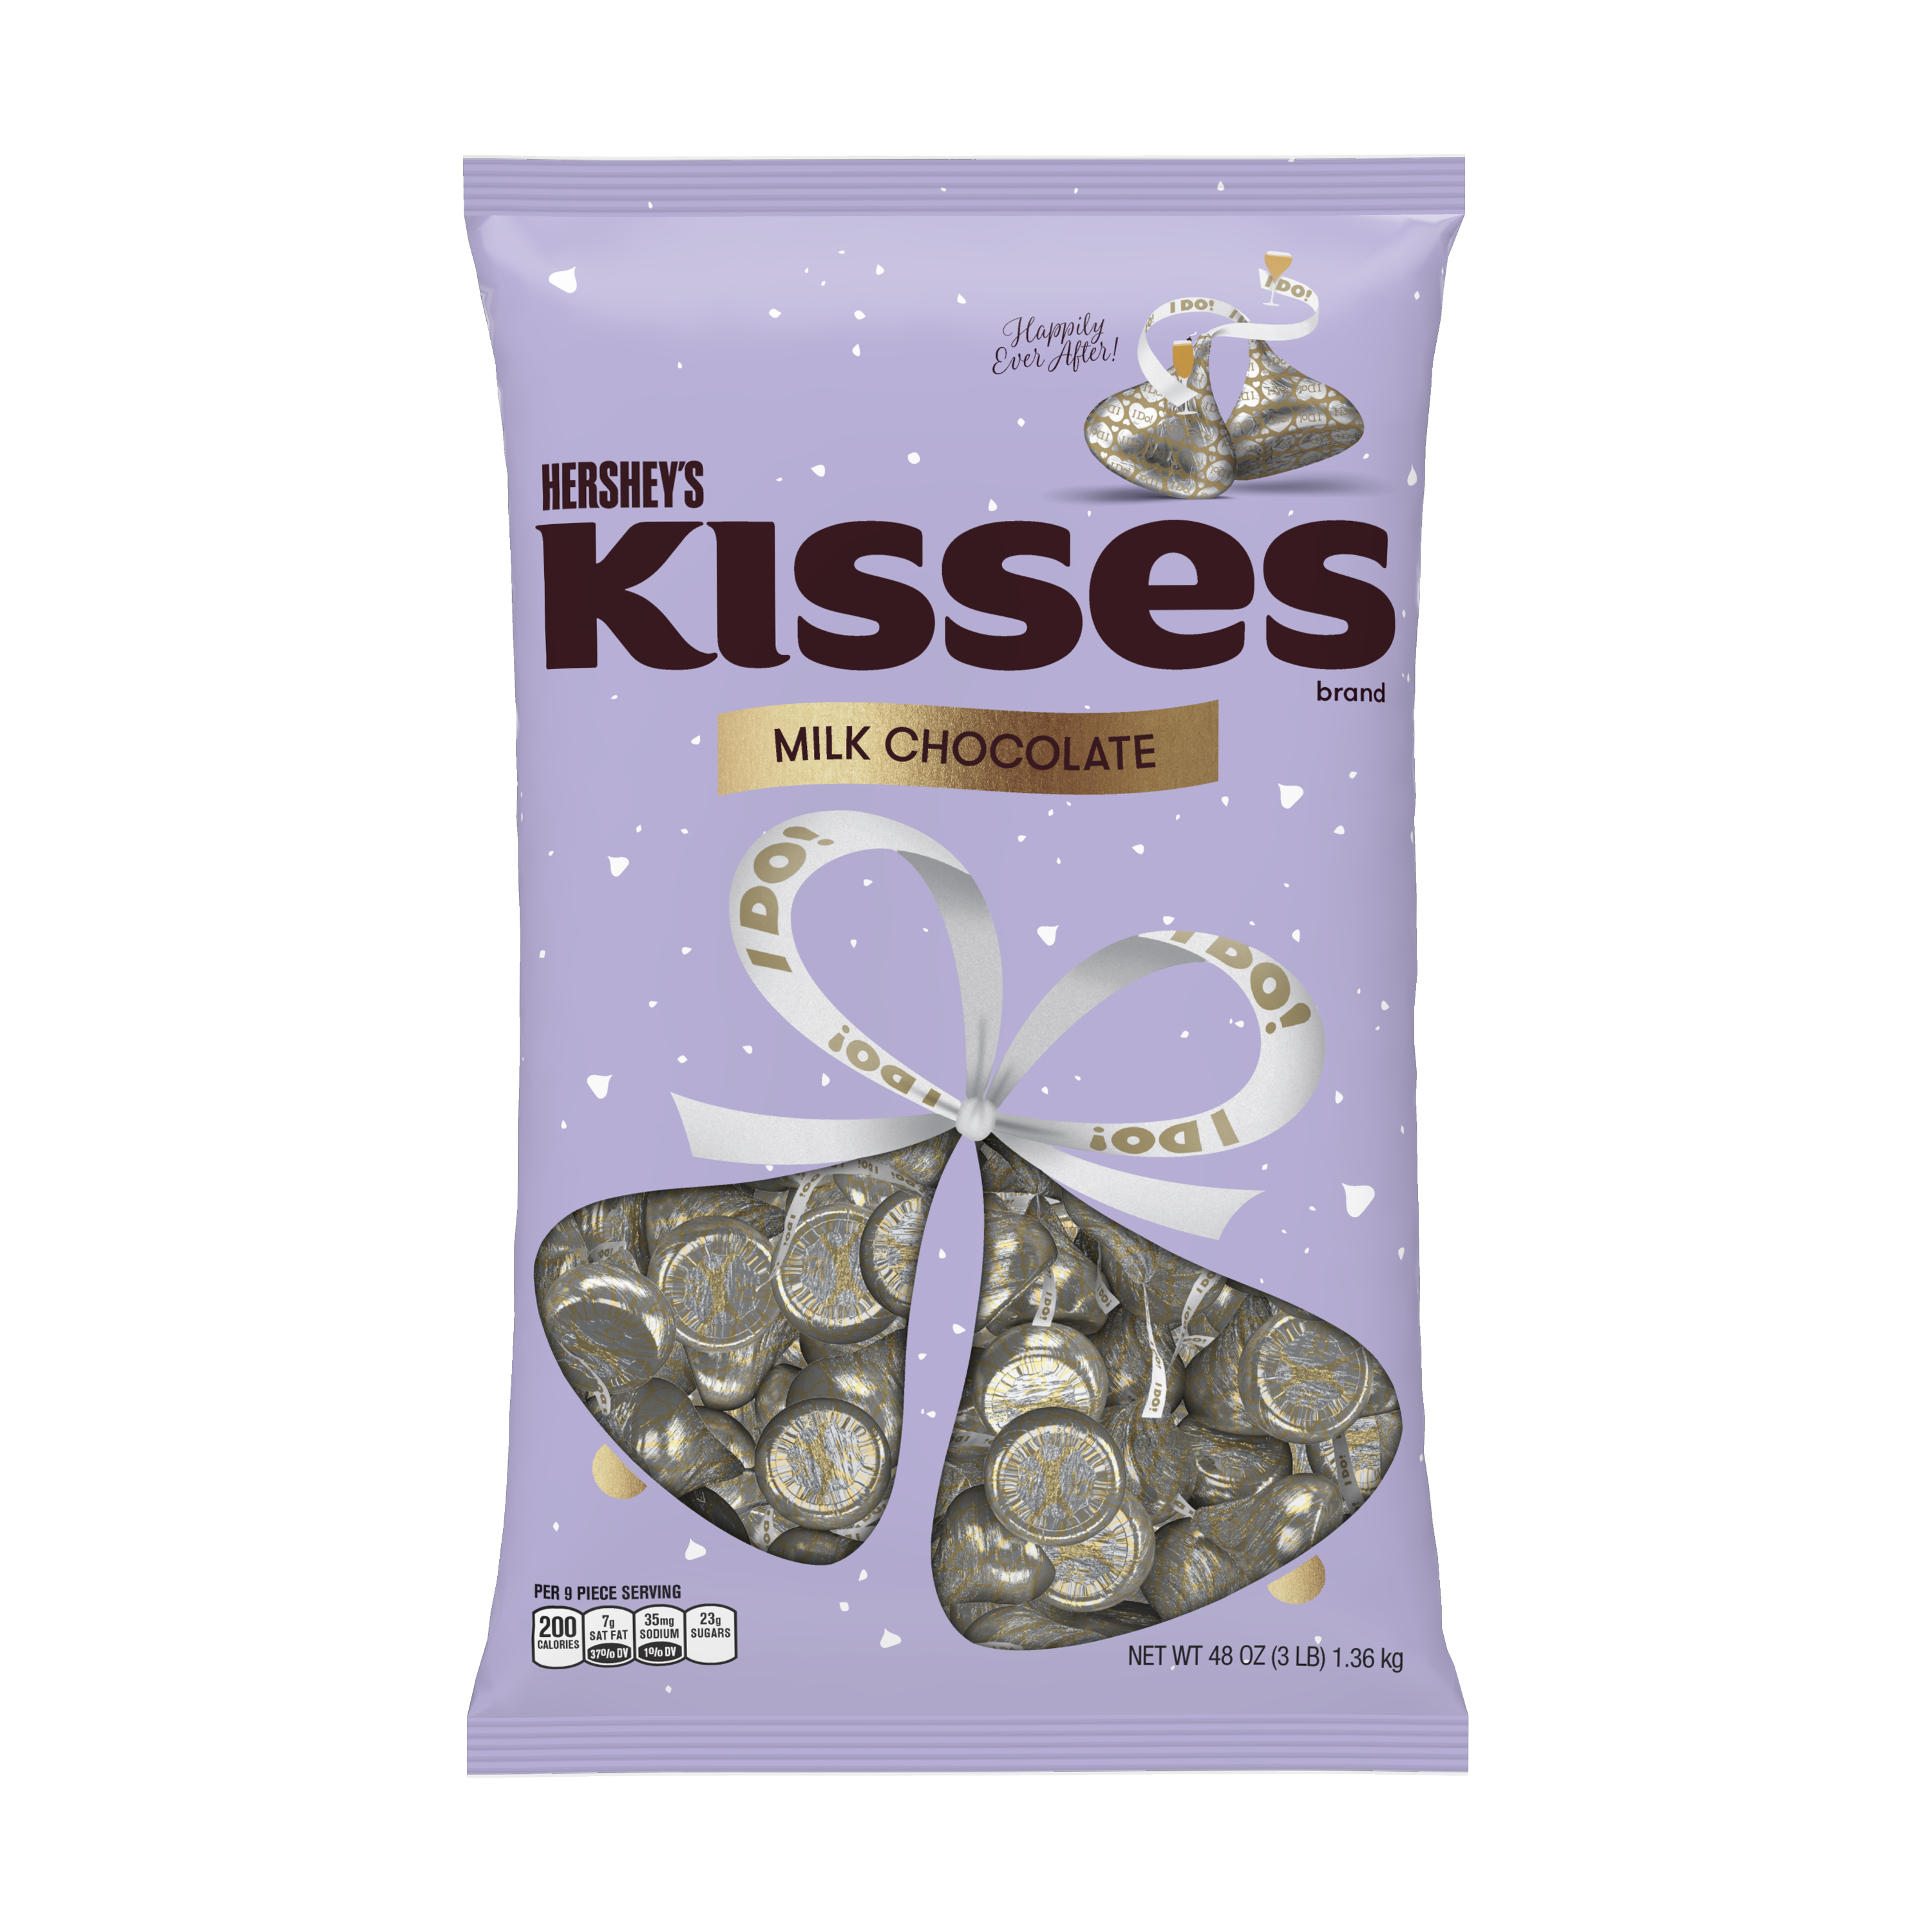 """HERSHEY'S KISSES Wedding """"I do"""" Milk Chocolate Candy, 48 oz bag - Front of Package"""